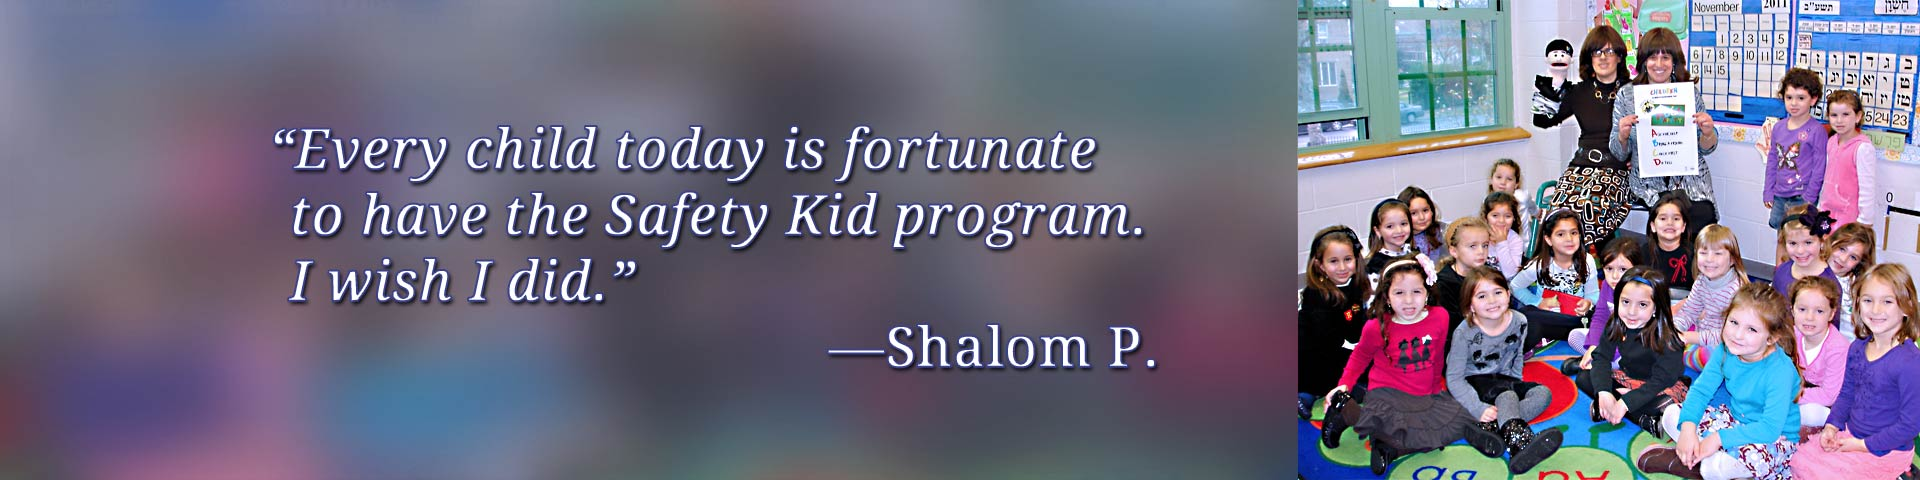 Every child todayis fortunate to have the Safety Kid program. I wish I did. —Shalom P.